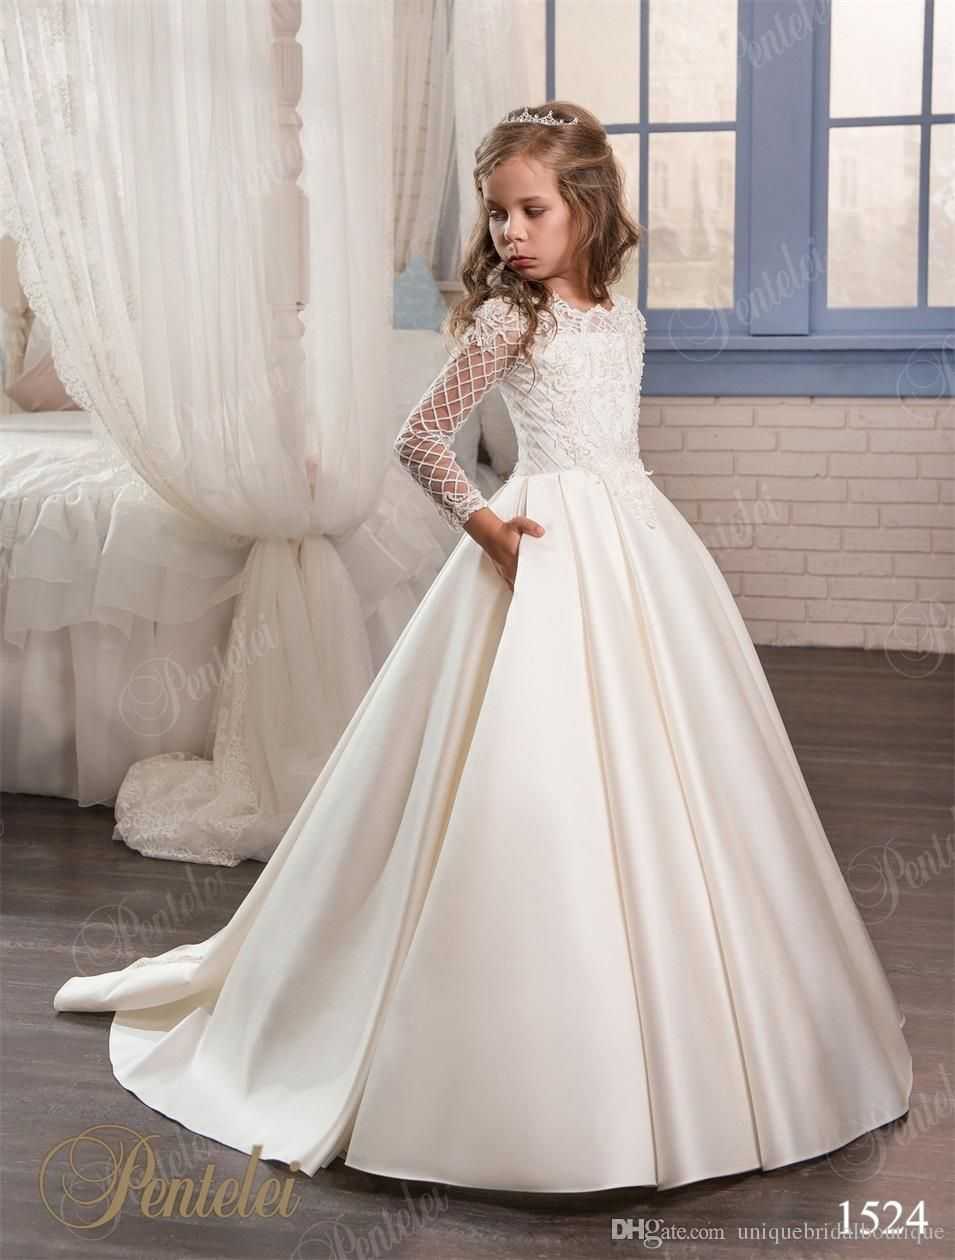 Wedding dresses for little girls 2017 pentelei cheap with for Dresses for girls wedding